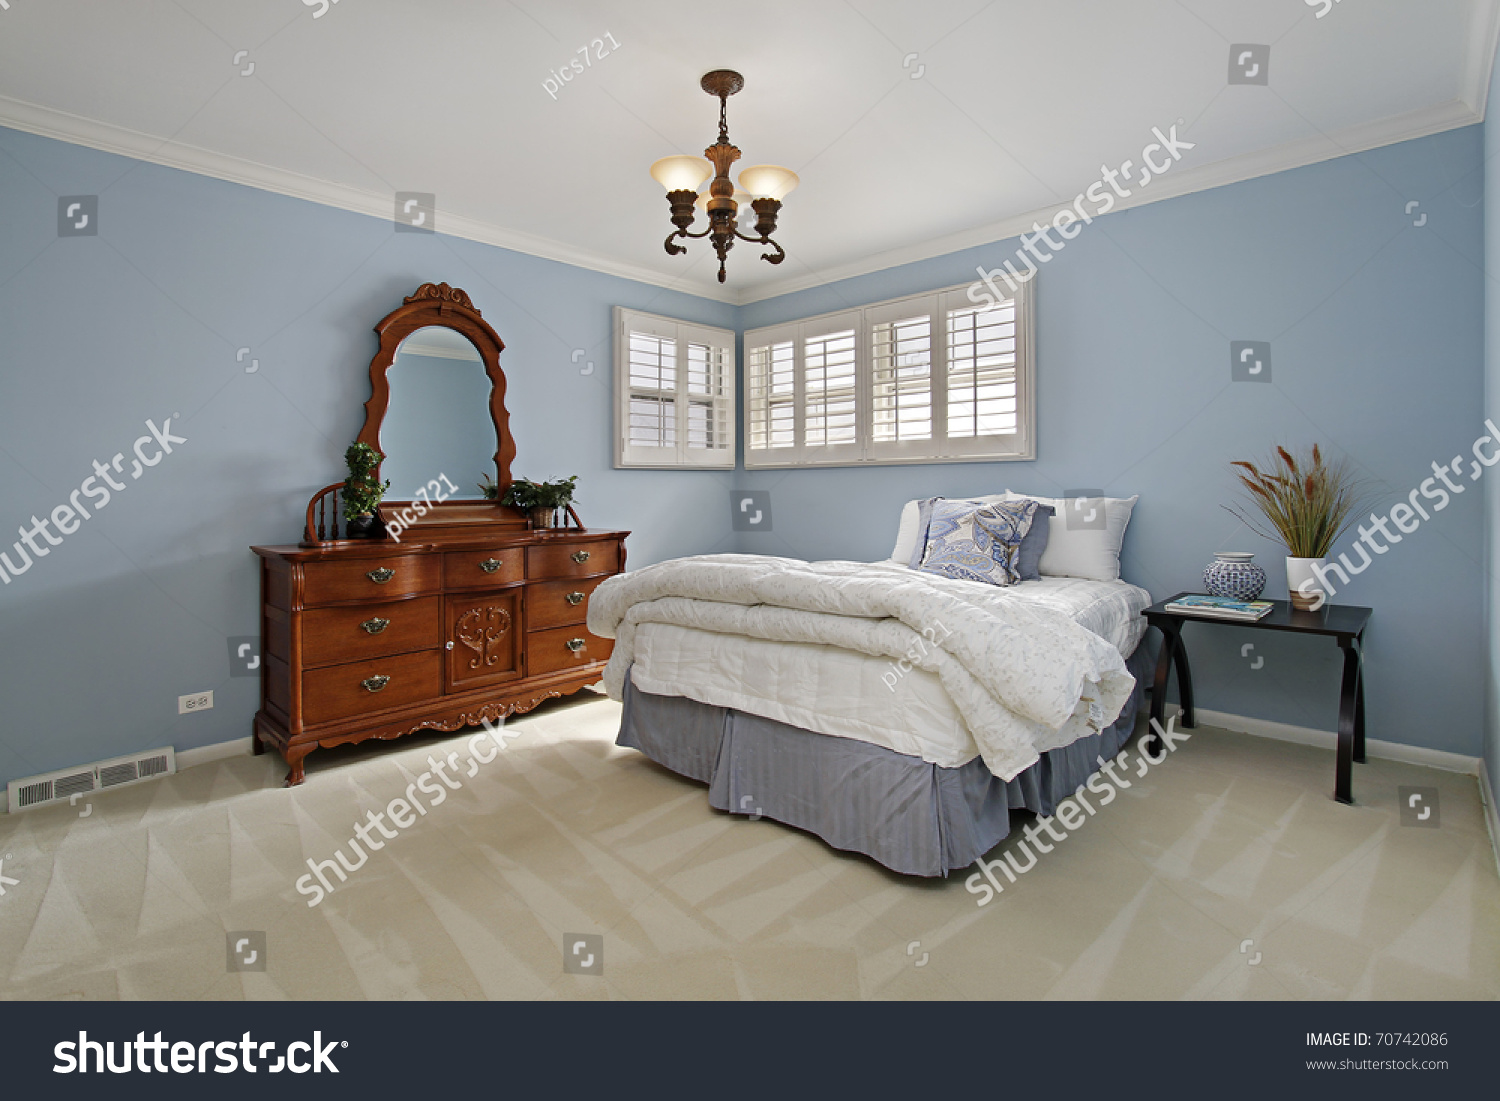 Master bedroom in suburban home with light blue walls stock photo 70742086 shutterstock Master bedroom light blue walls